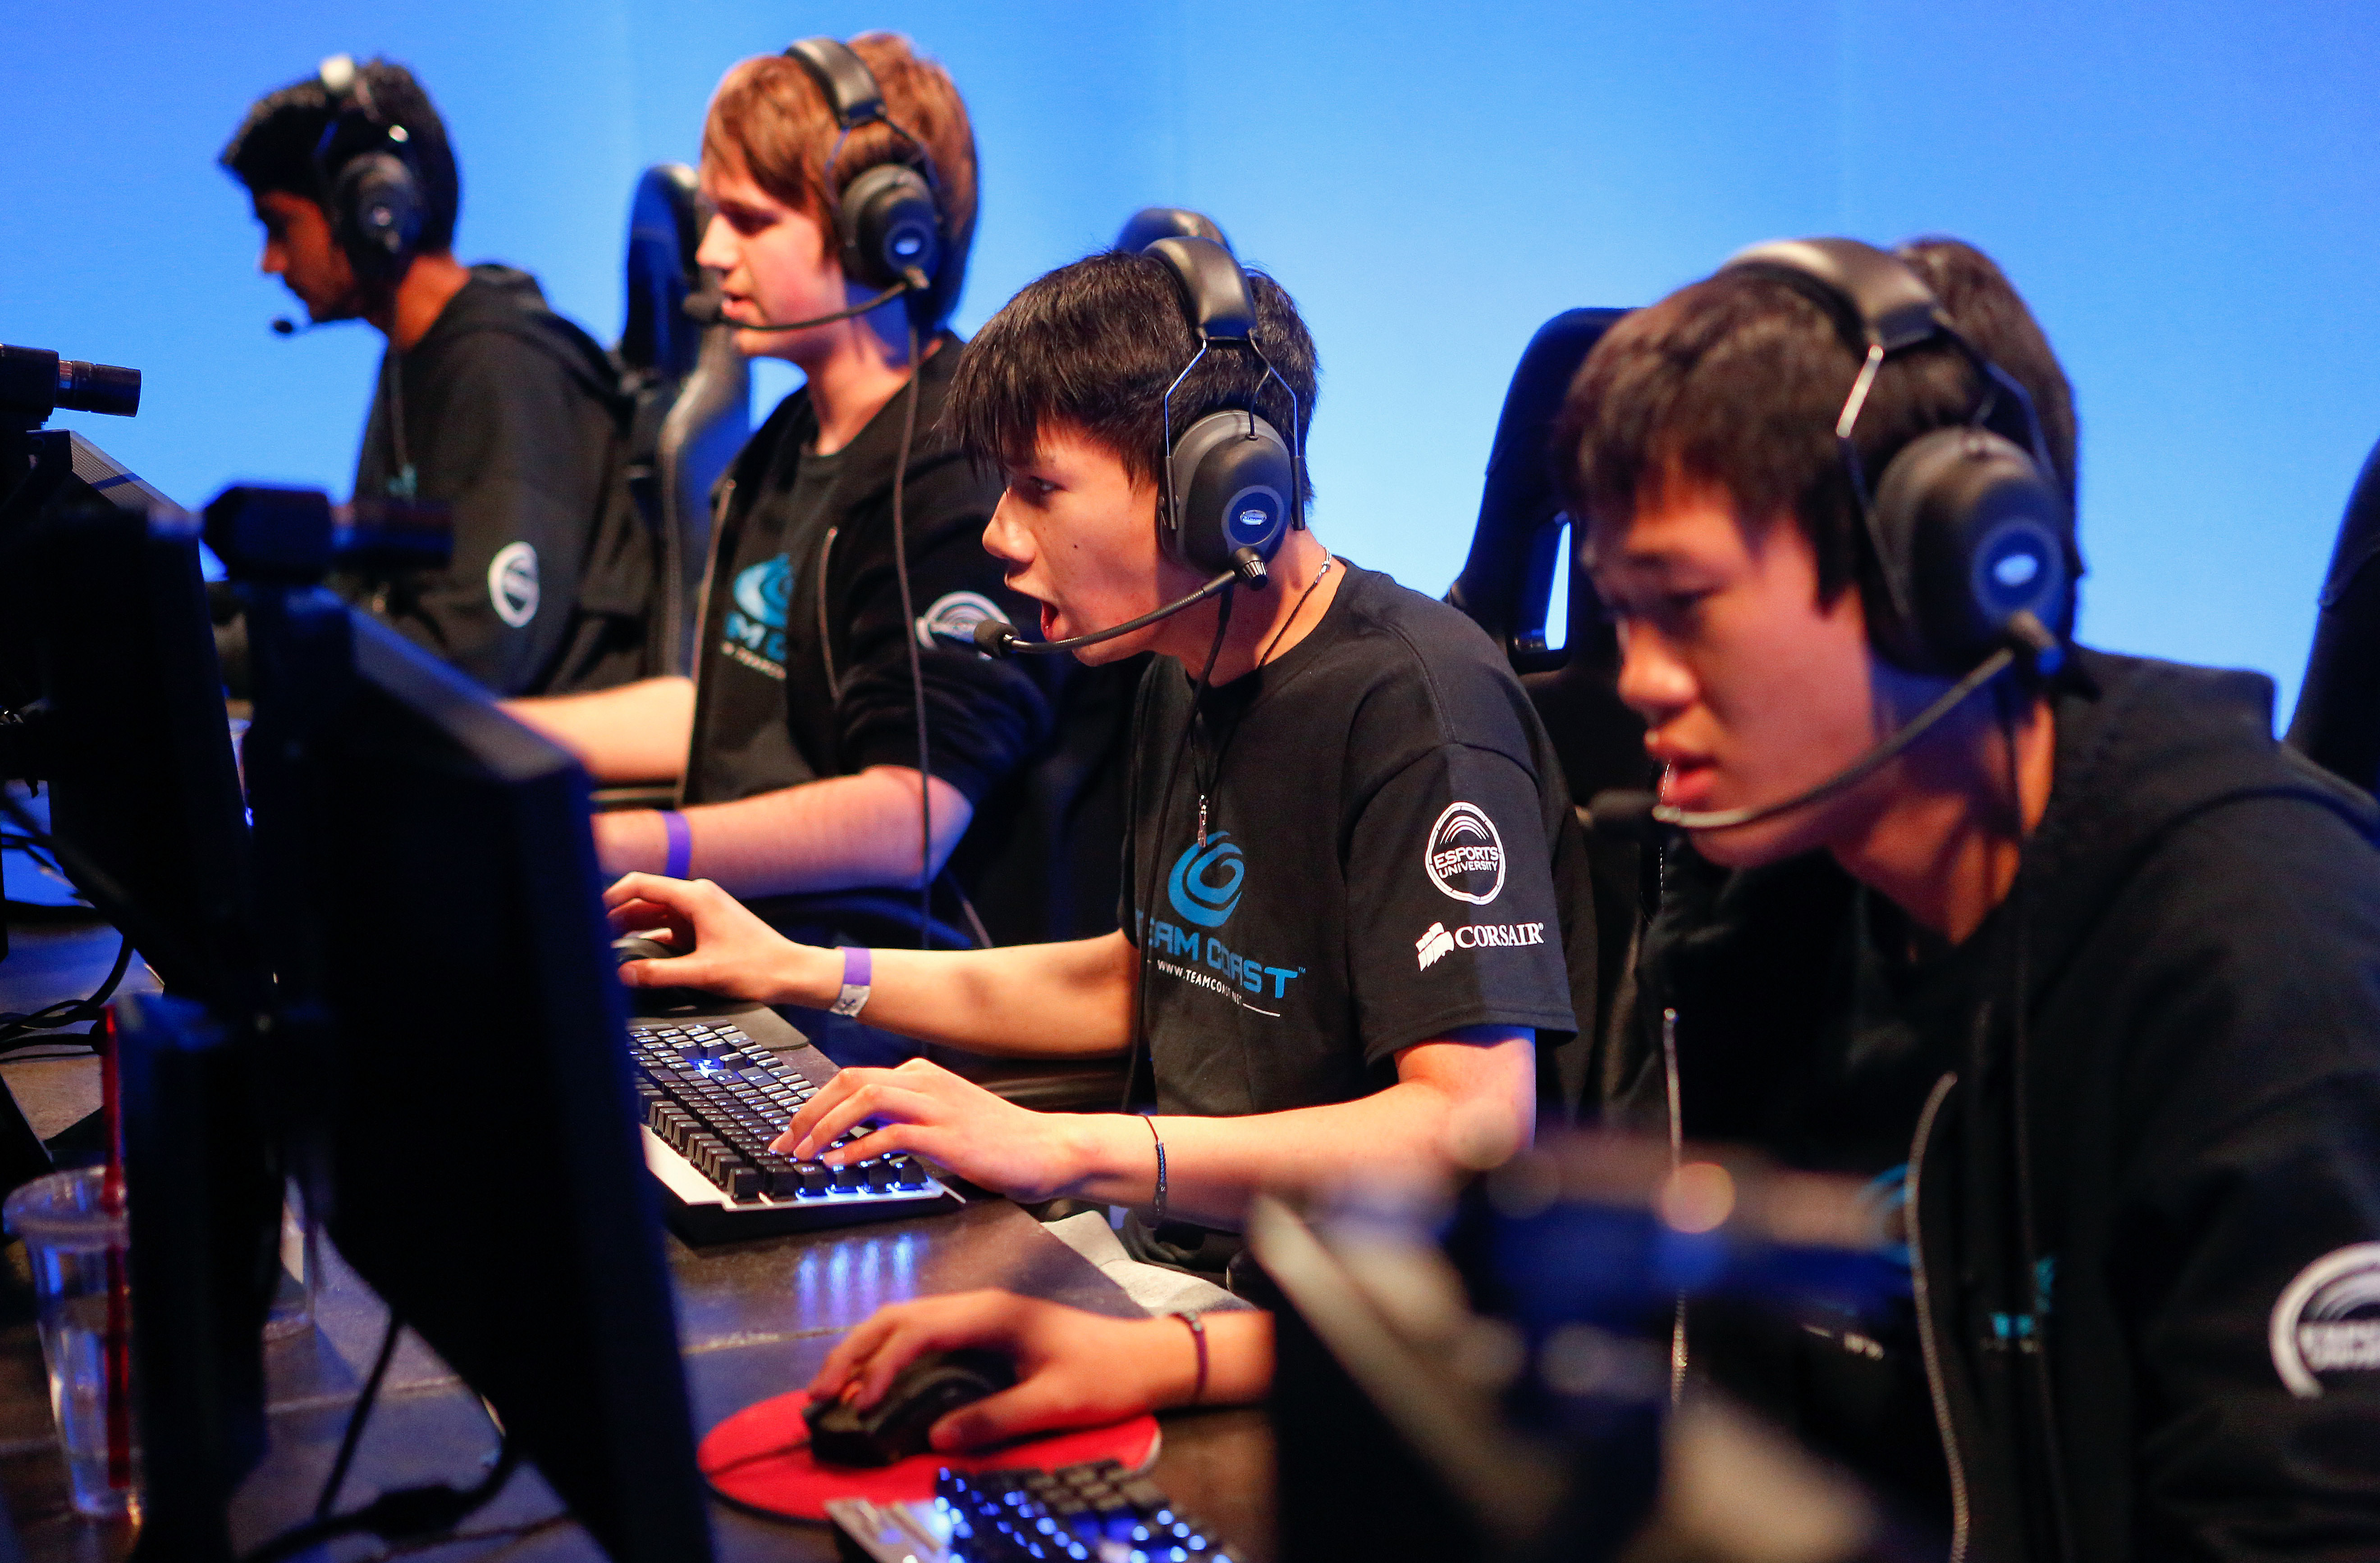 left to right-Darshan (ZionSpartan) Upadhyaya, Josh (NintendudeX) Atkins, Danny (Shiphtur) Le, and